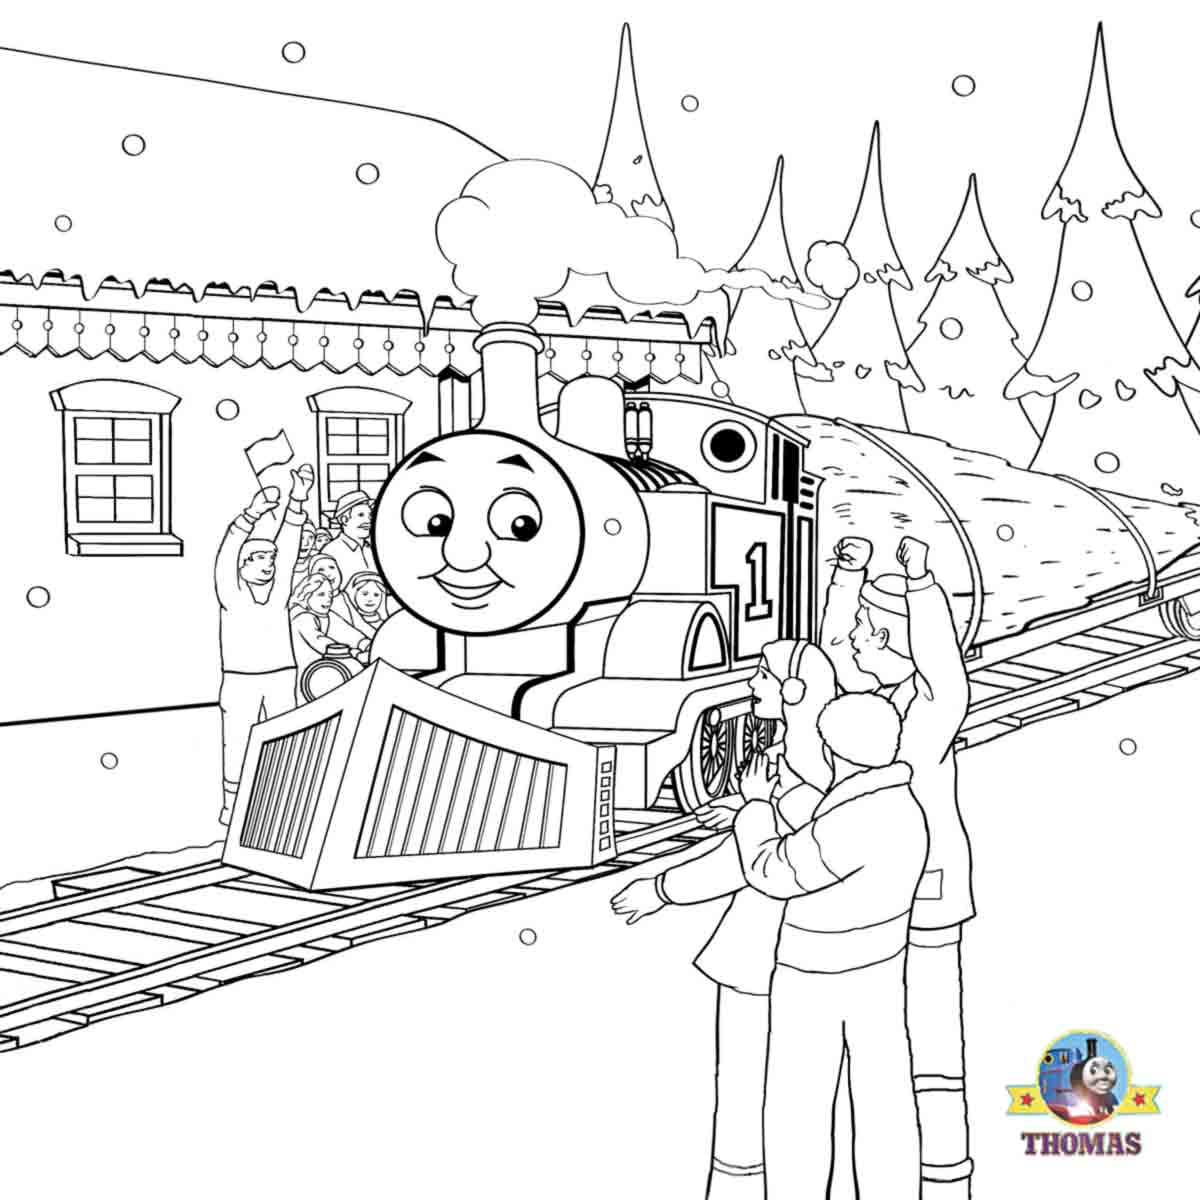 coloring pages thomas tank engine - photo#27